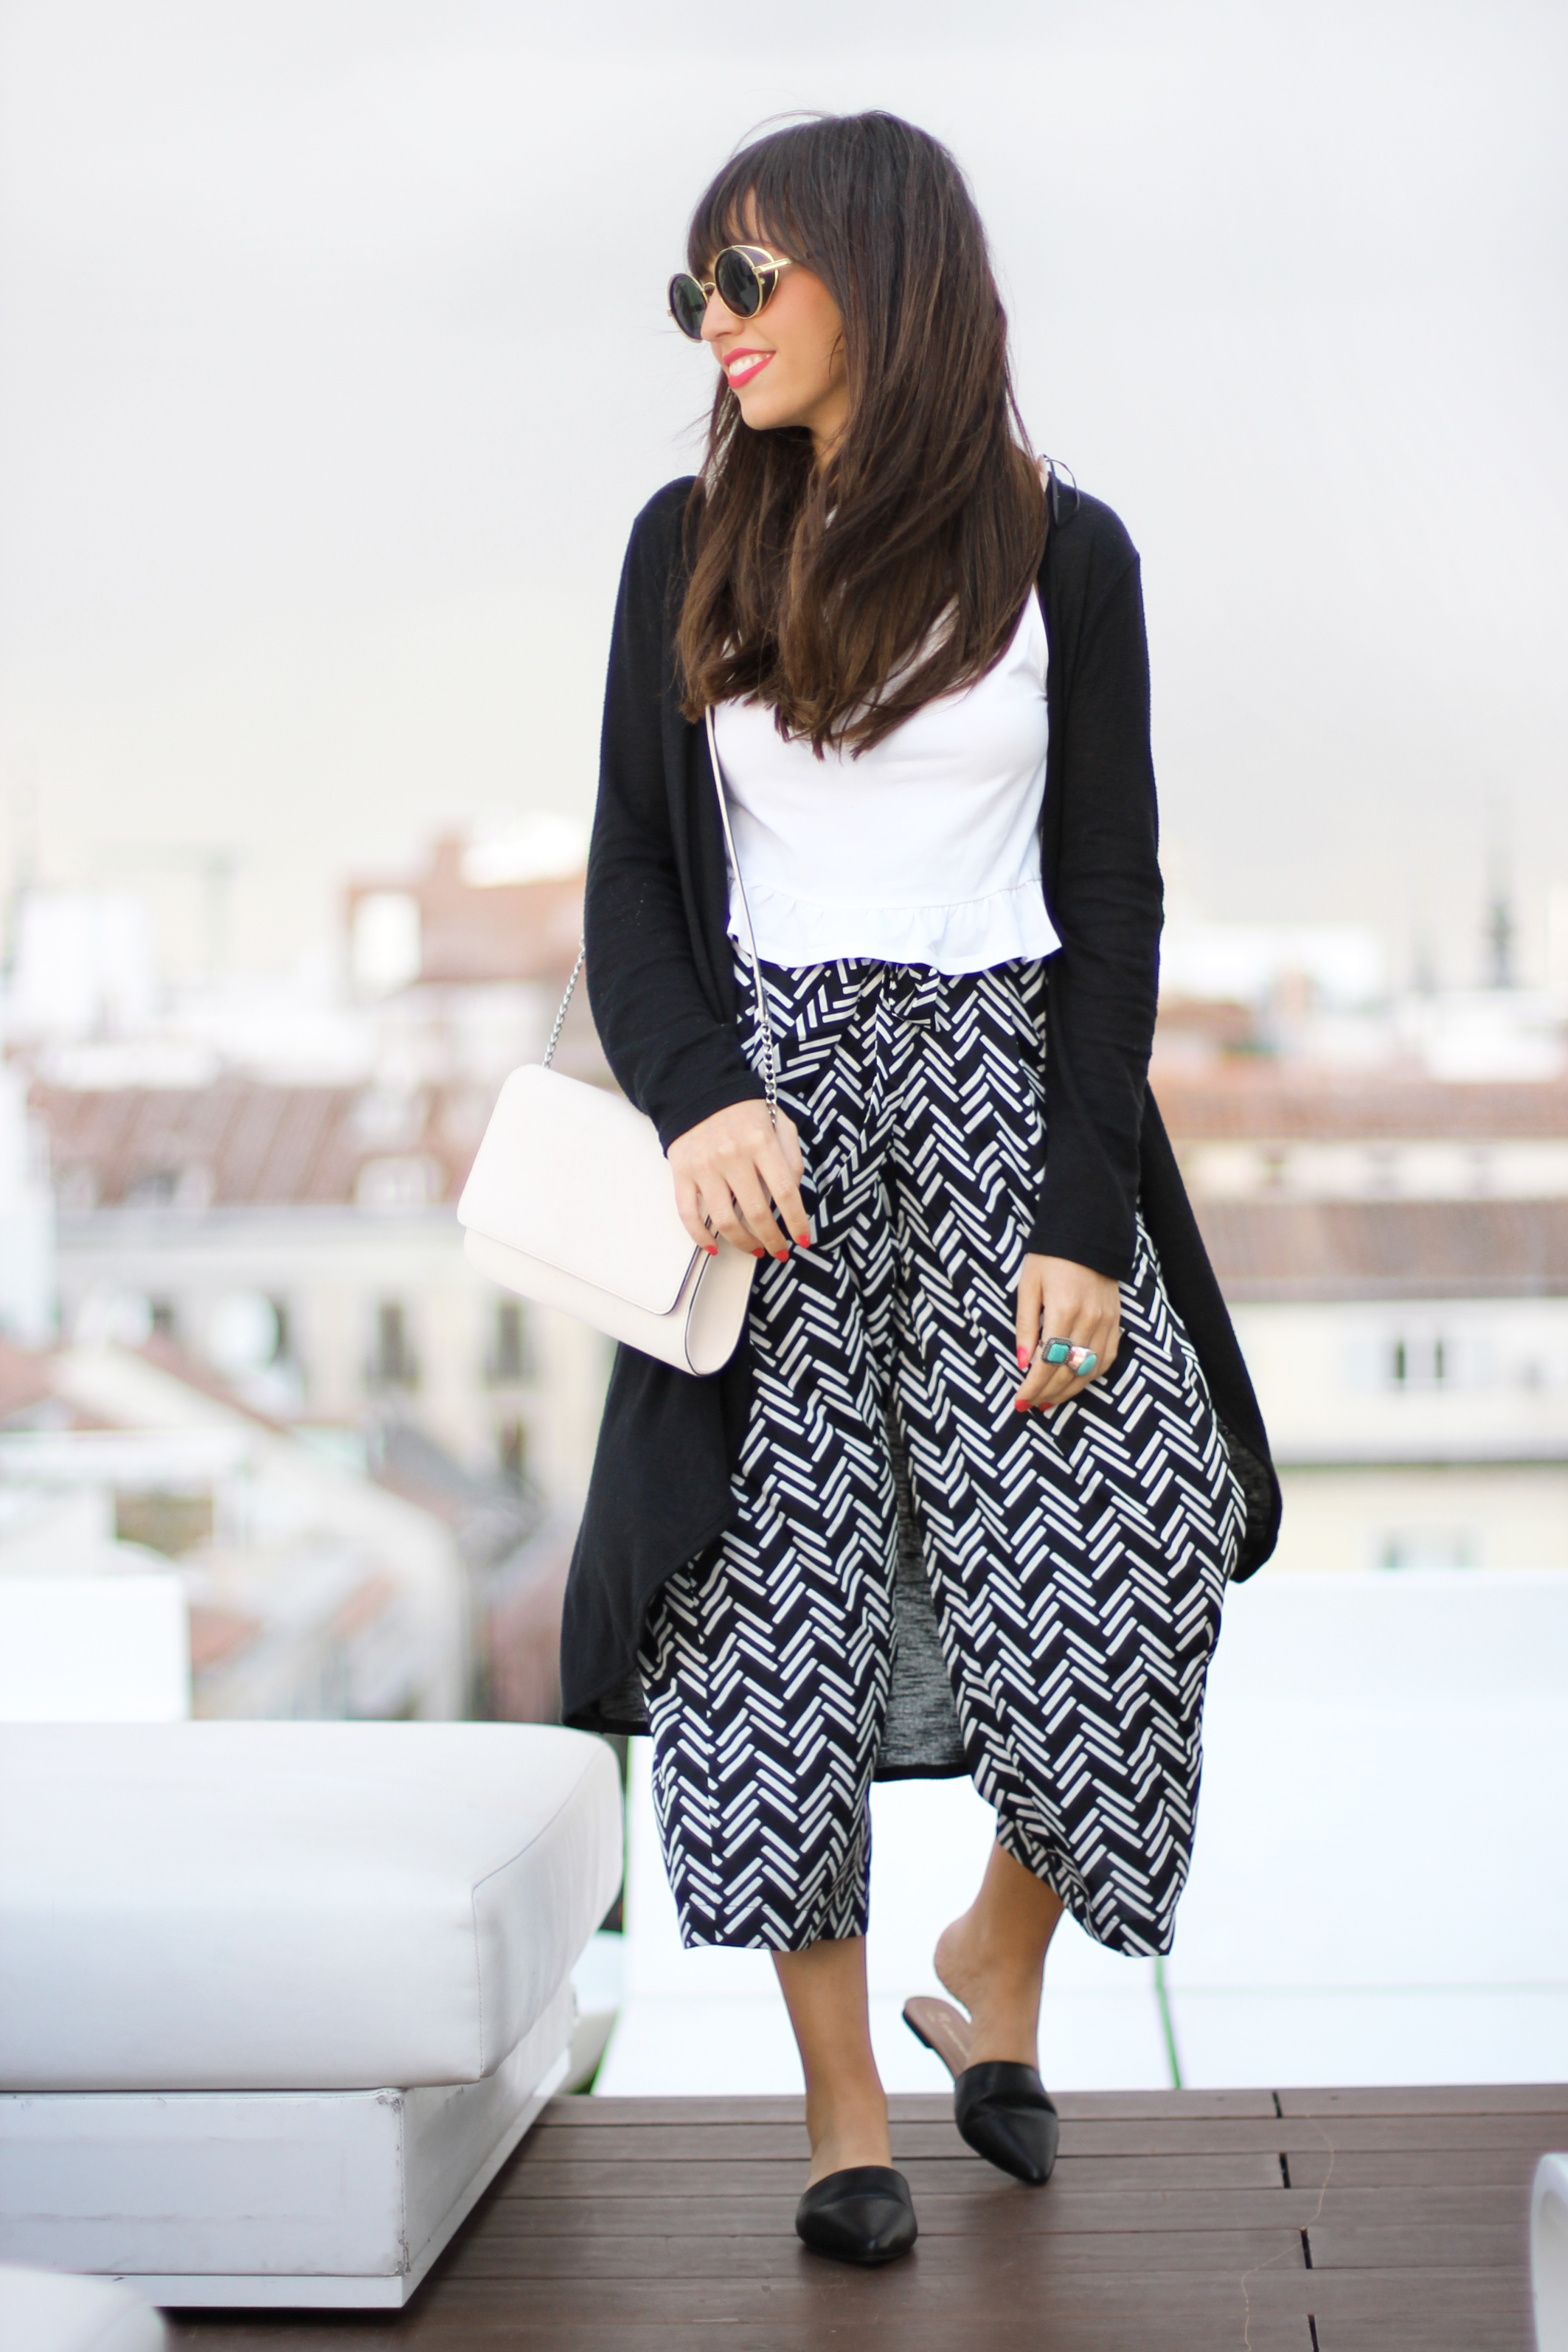 Street style, ethnic culotte pants, long jacket, summer outfit